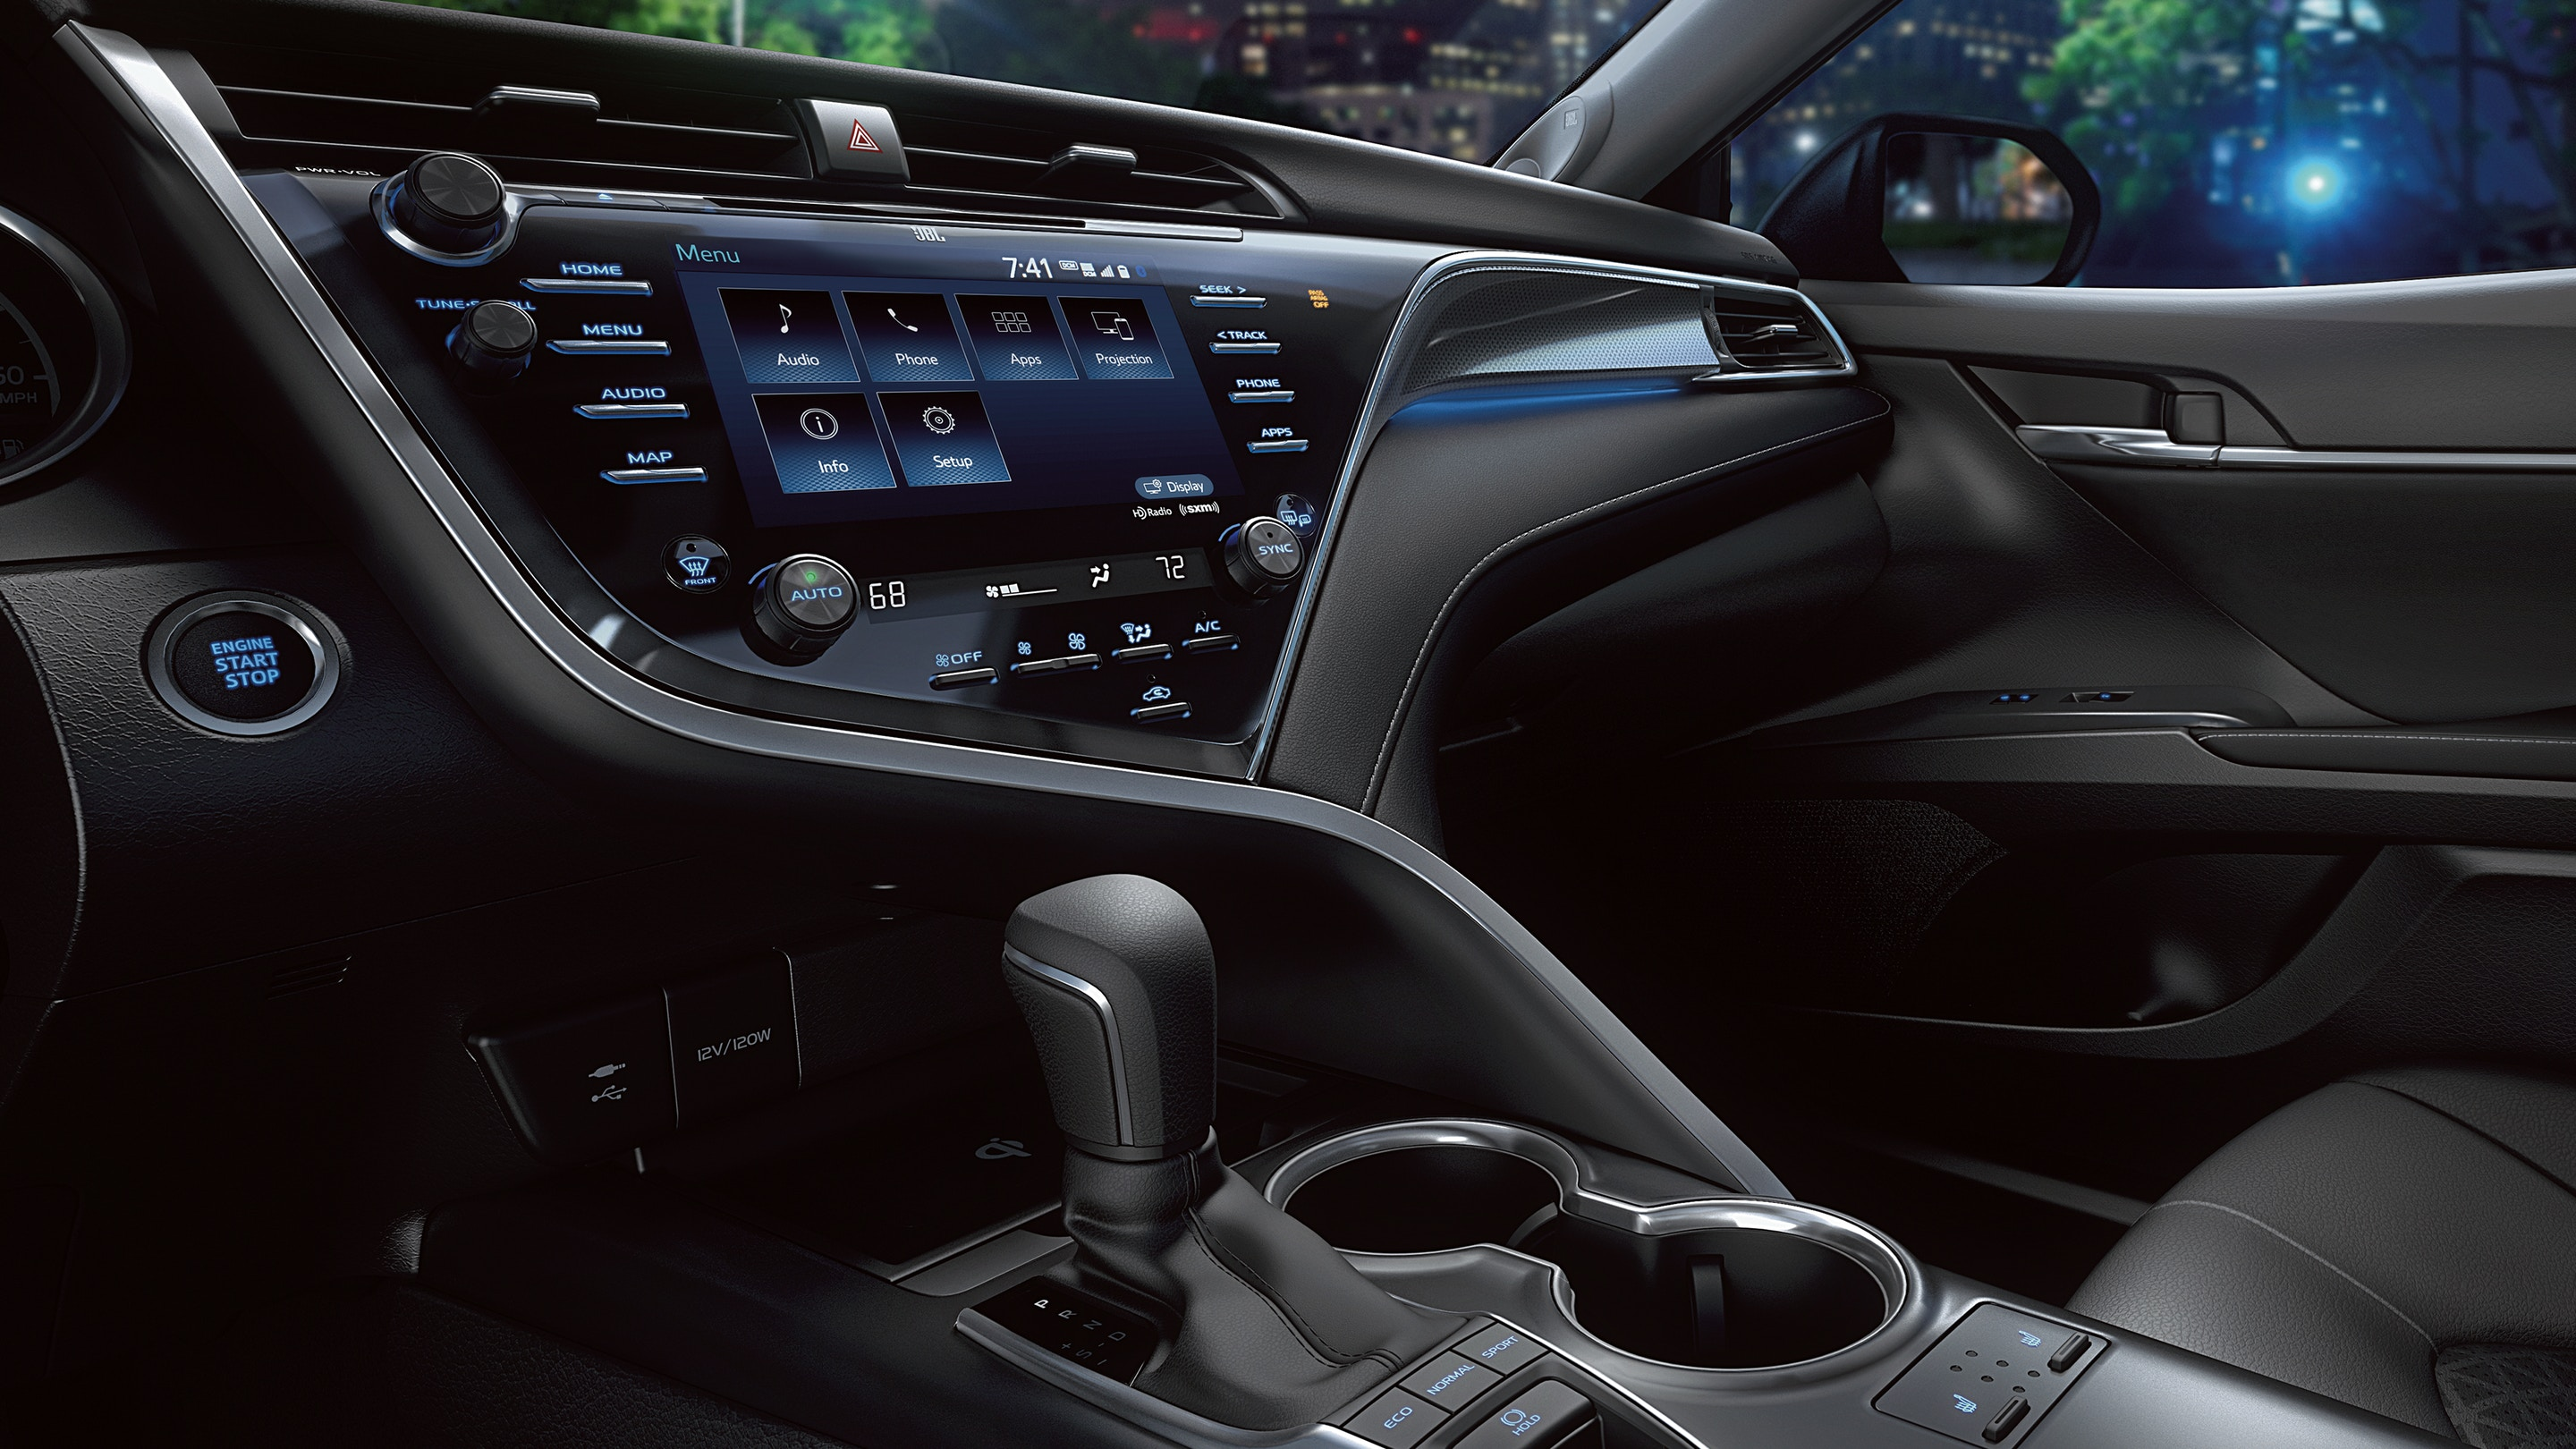 Interior of the 2020 Camry